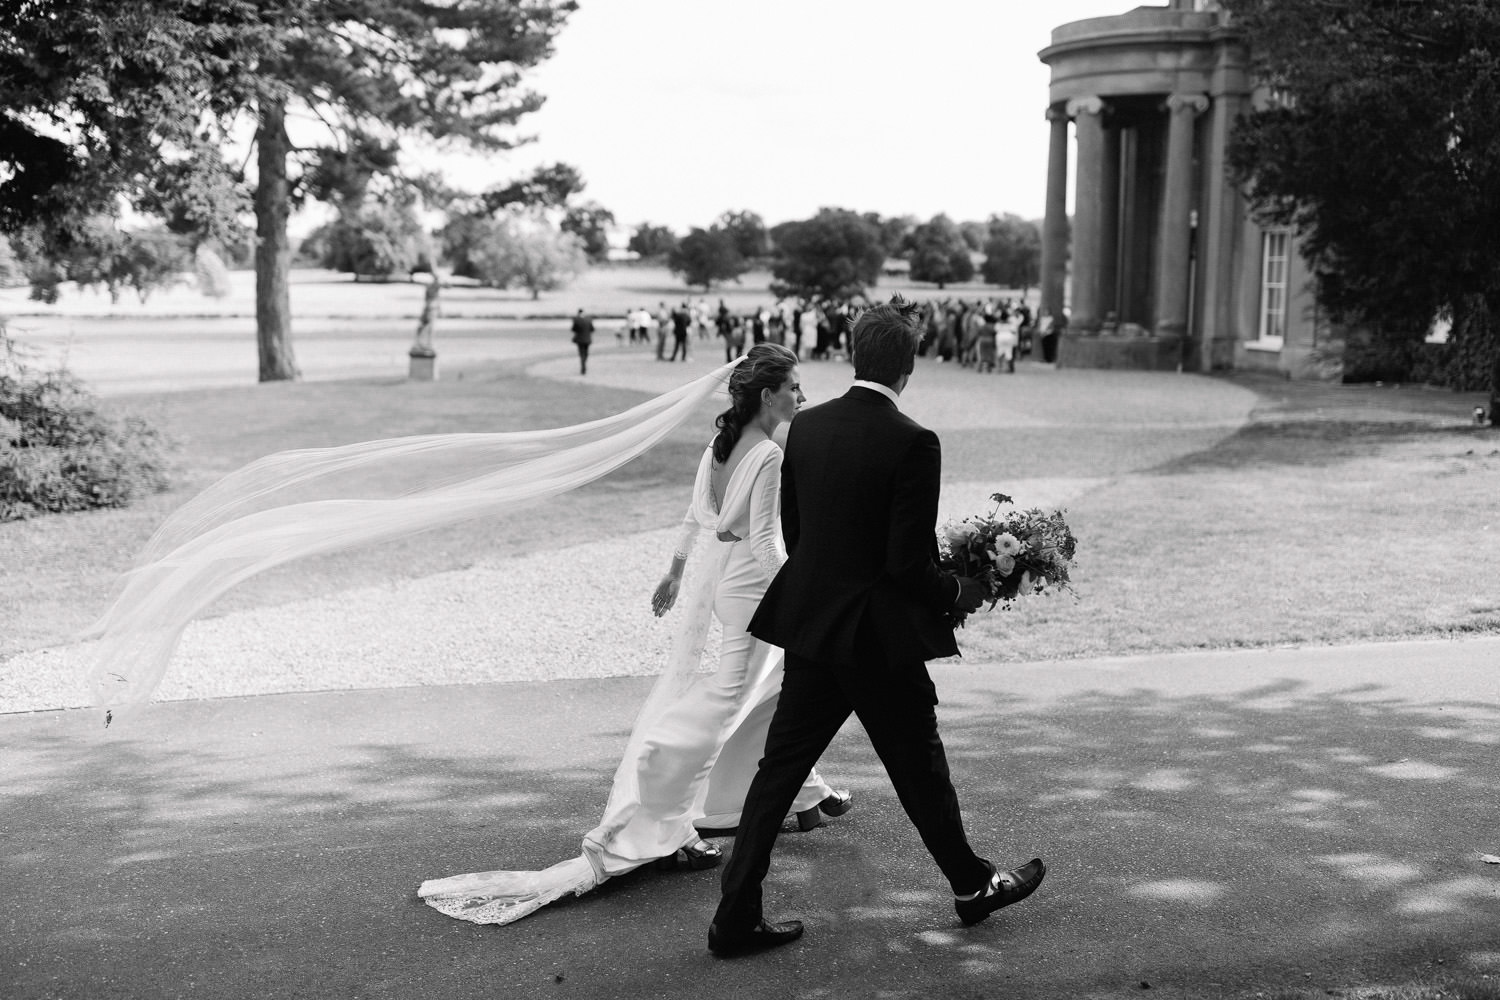 Bride and groom walk to wedding venue with veil blowing in the wind